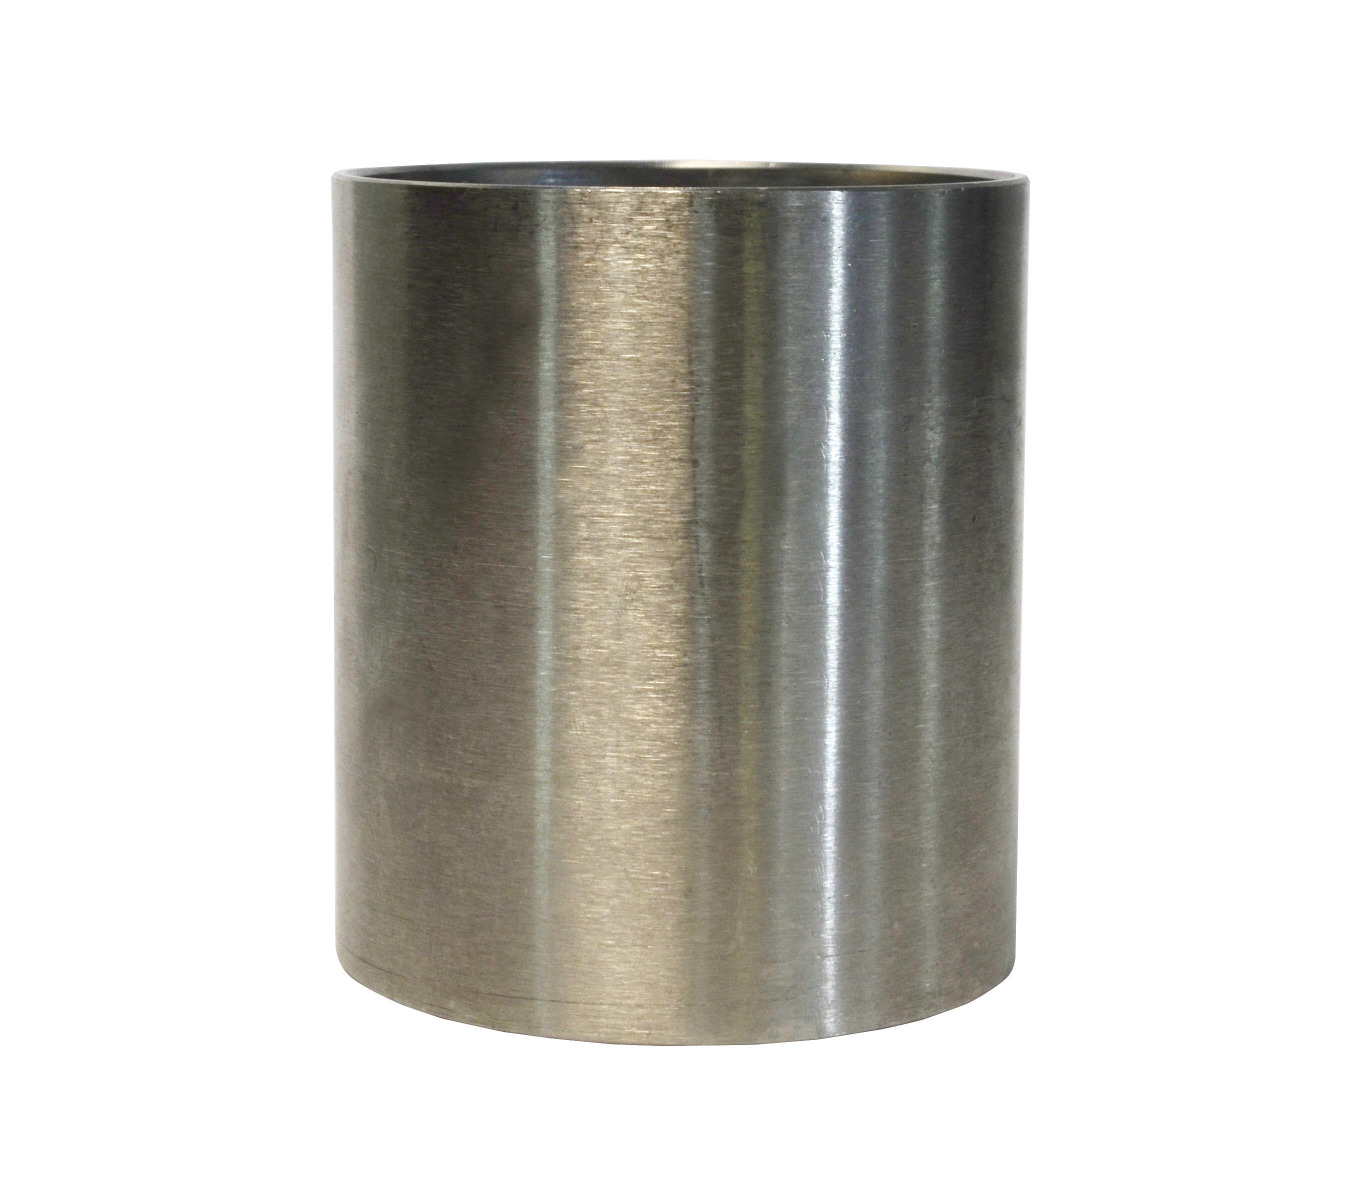 Indutherm Stainless Steel Flask 50x55mm